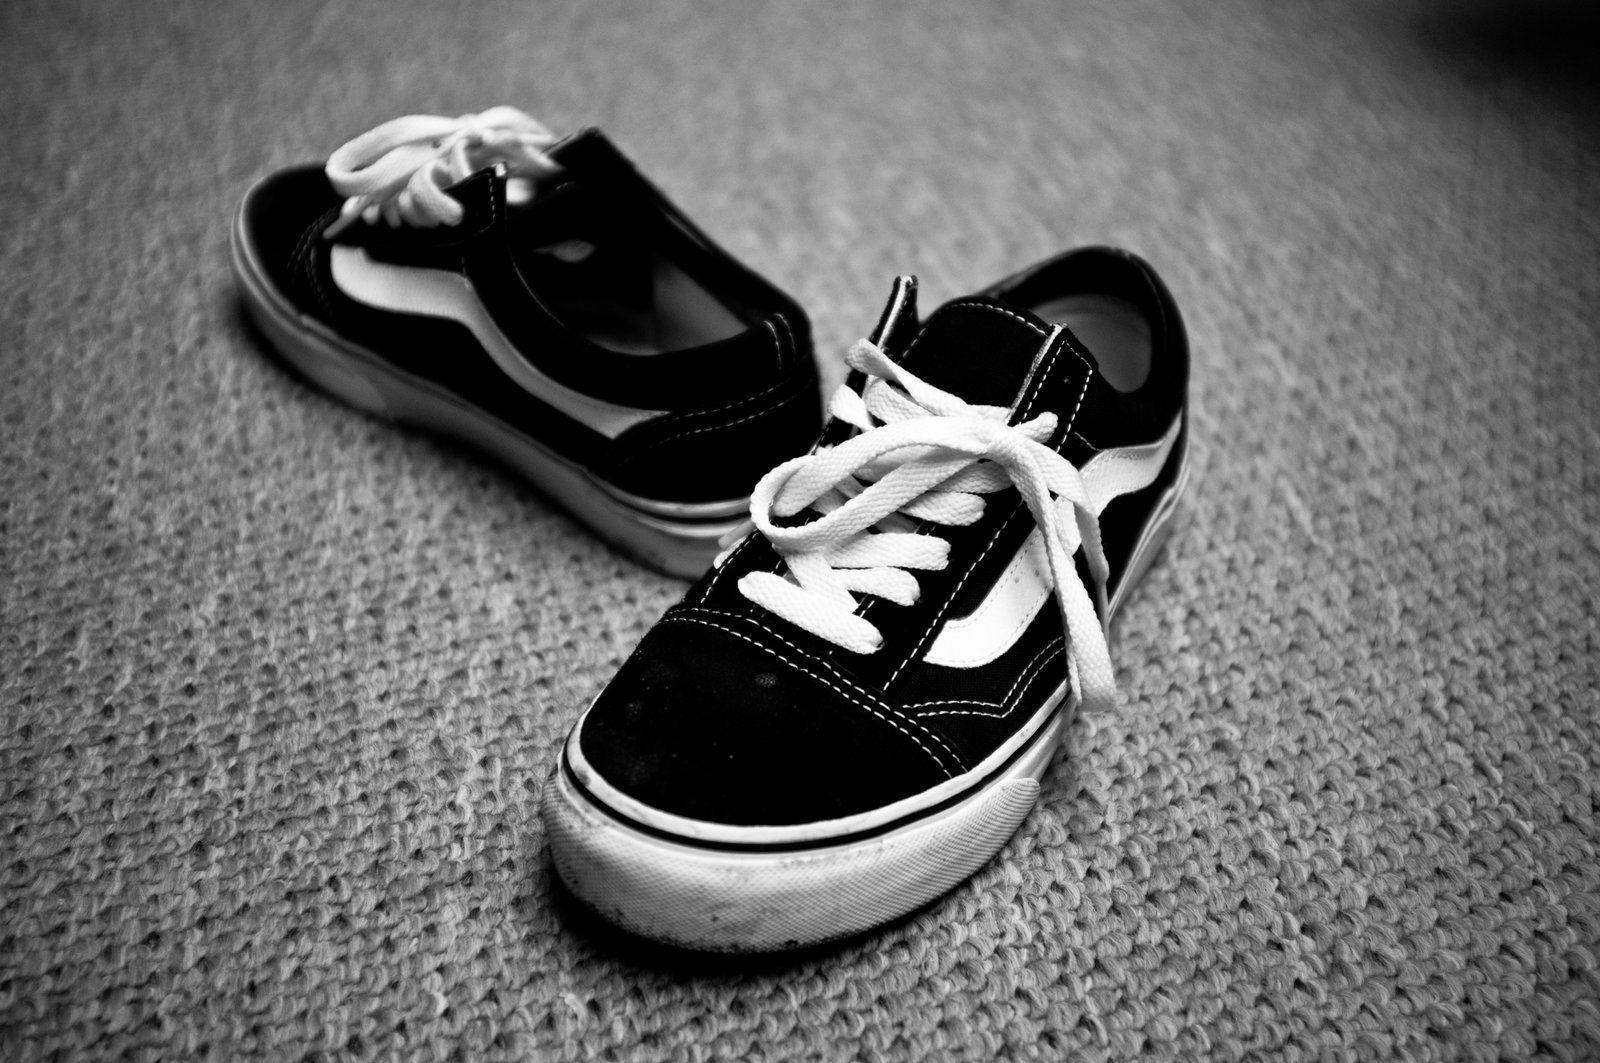 Wallpapers For > Vans Off The Wall Wallpapers Tumblr